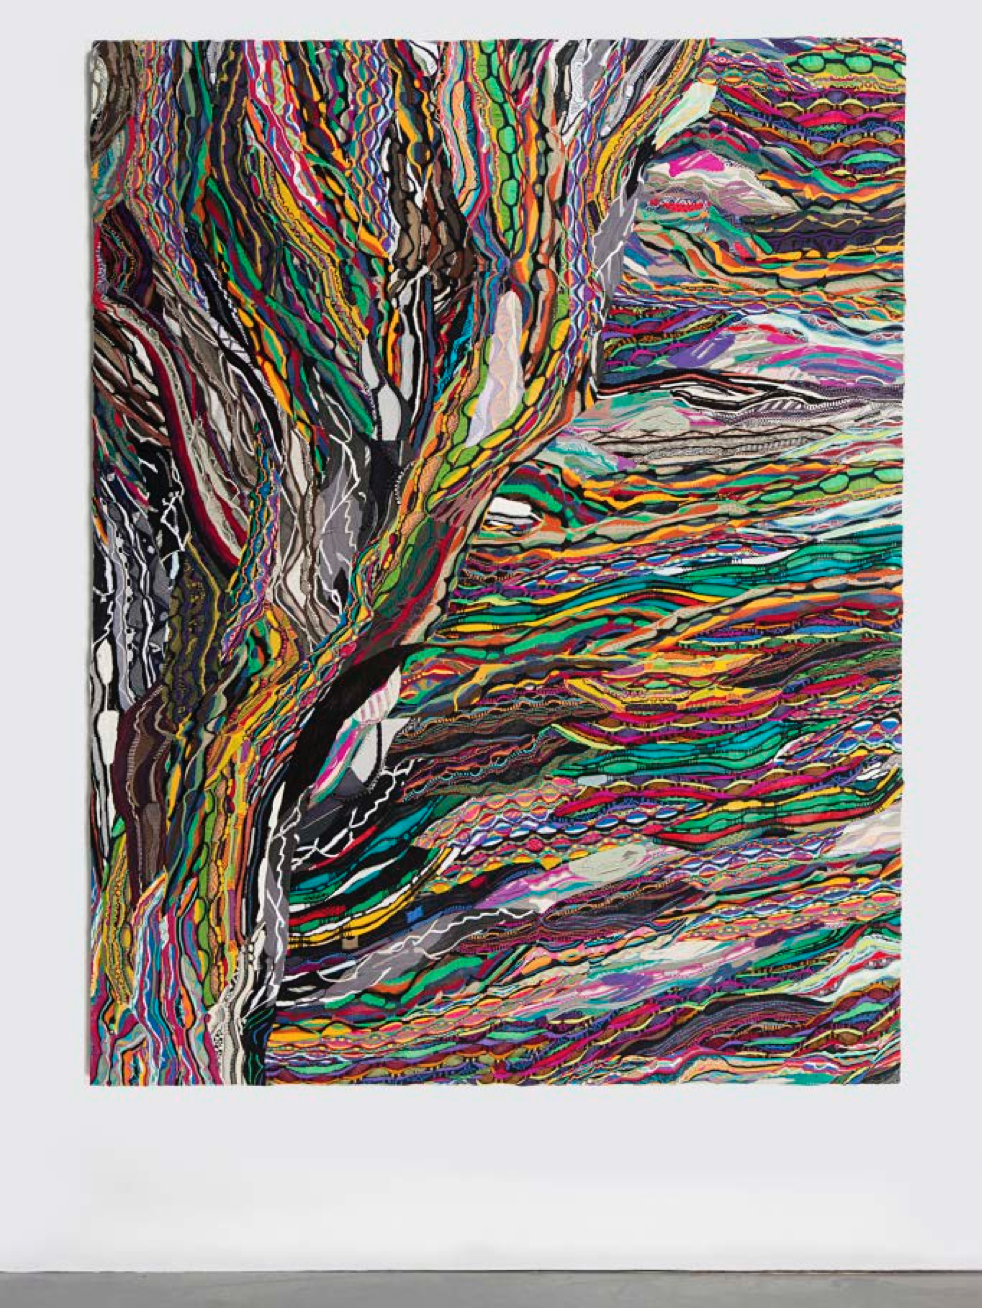 Anticyclonic, 2014. Mercerized cotton stretched on linen. 96 x 75 inches. Courtesy of the artist and Salon 94, New York.